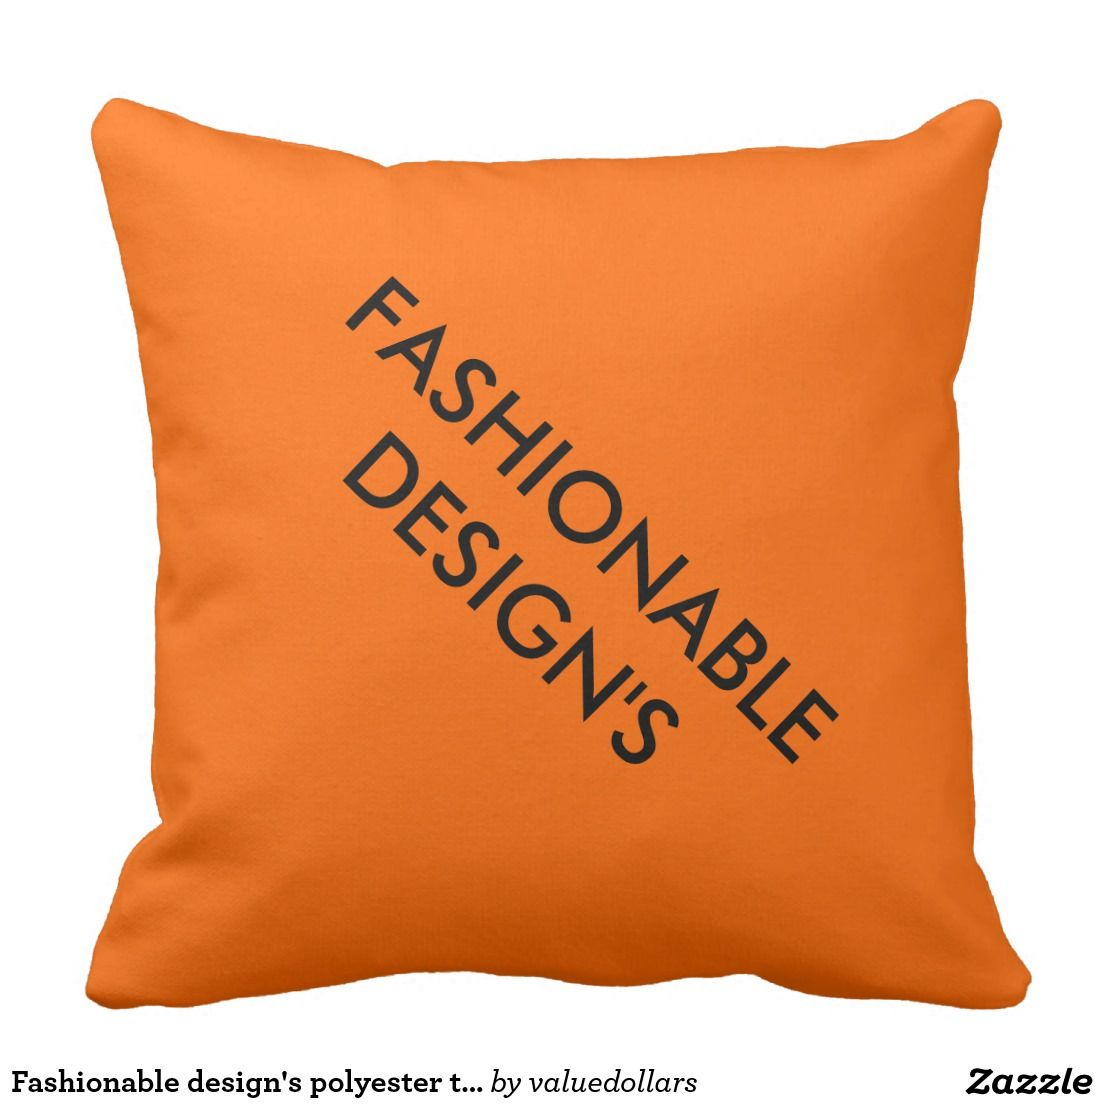 Fashionable design's polyester throw pillow